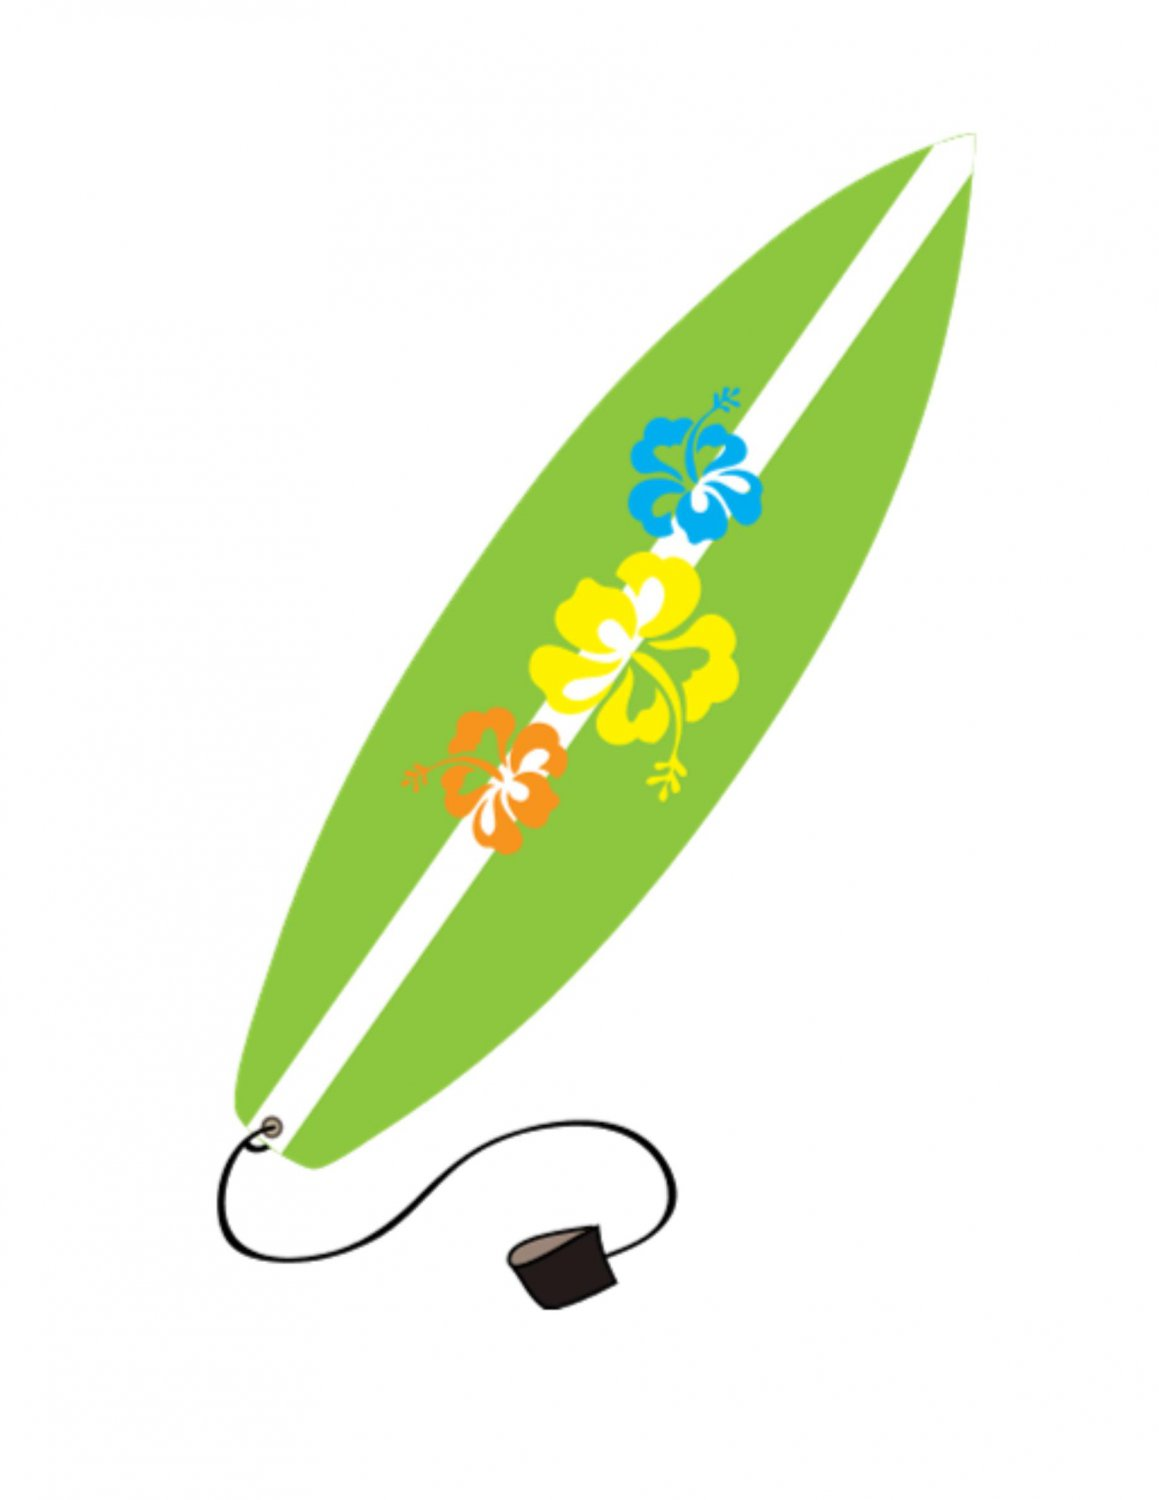 Surfboard Others 1 Clipart Image Icons F-Surfboard others 1 clipart image icons free graphics clipart-10